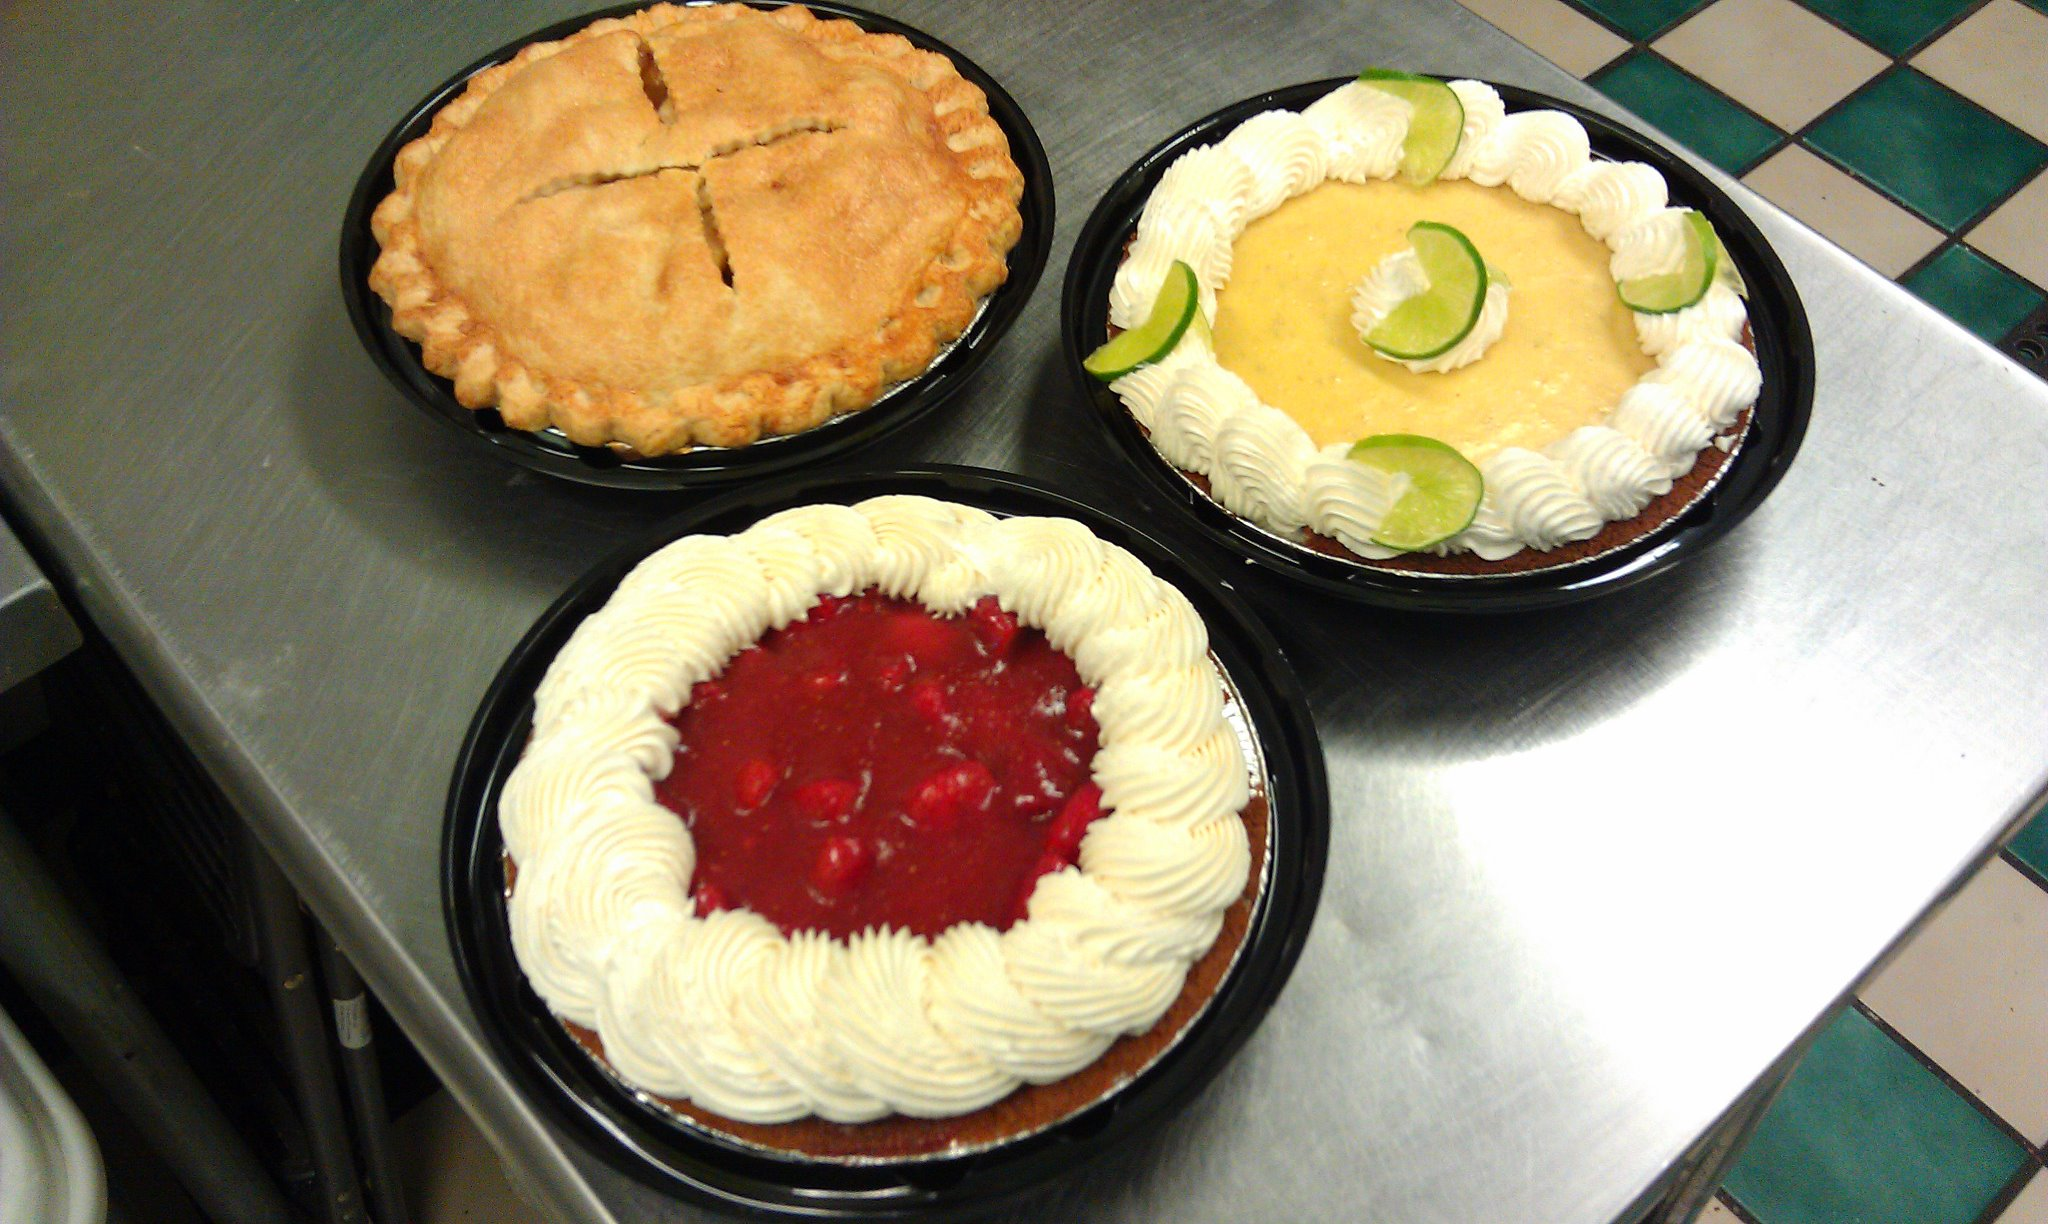 Variety of pies